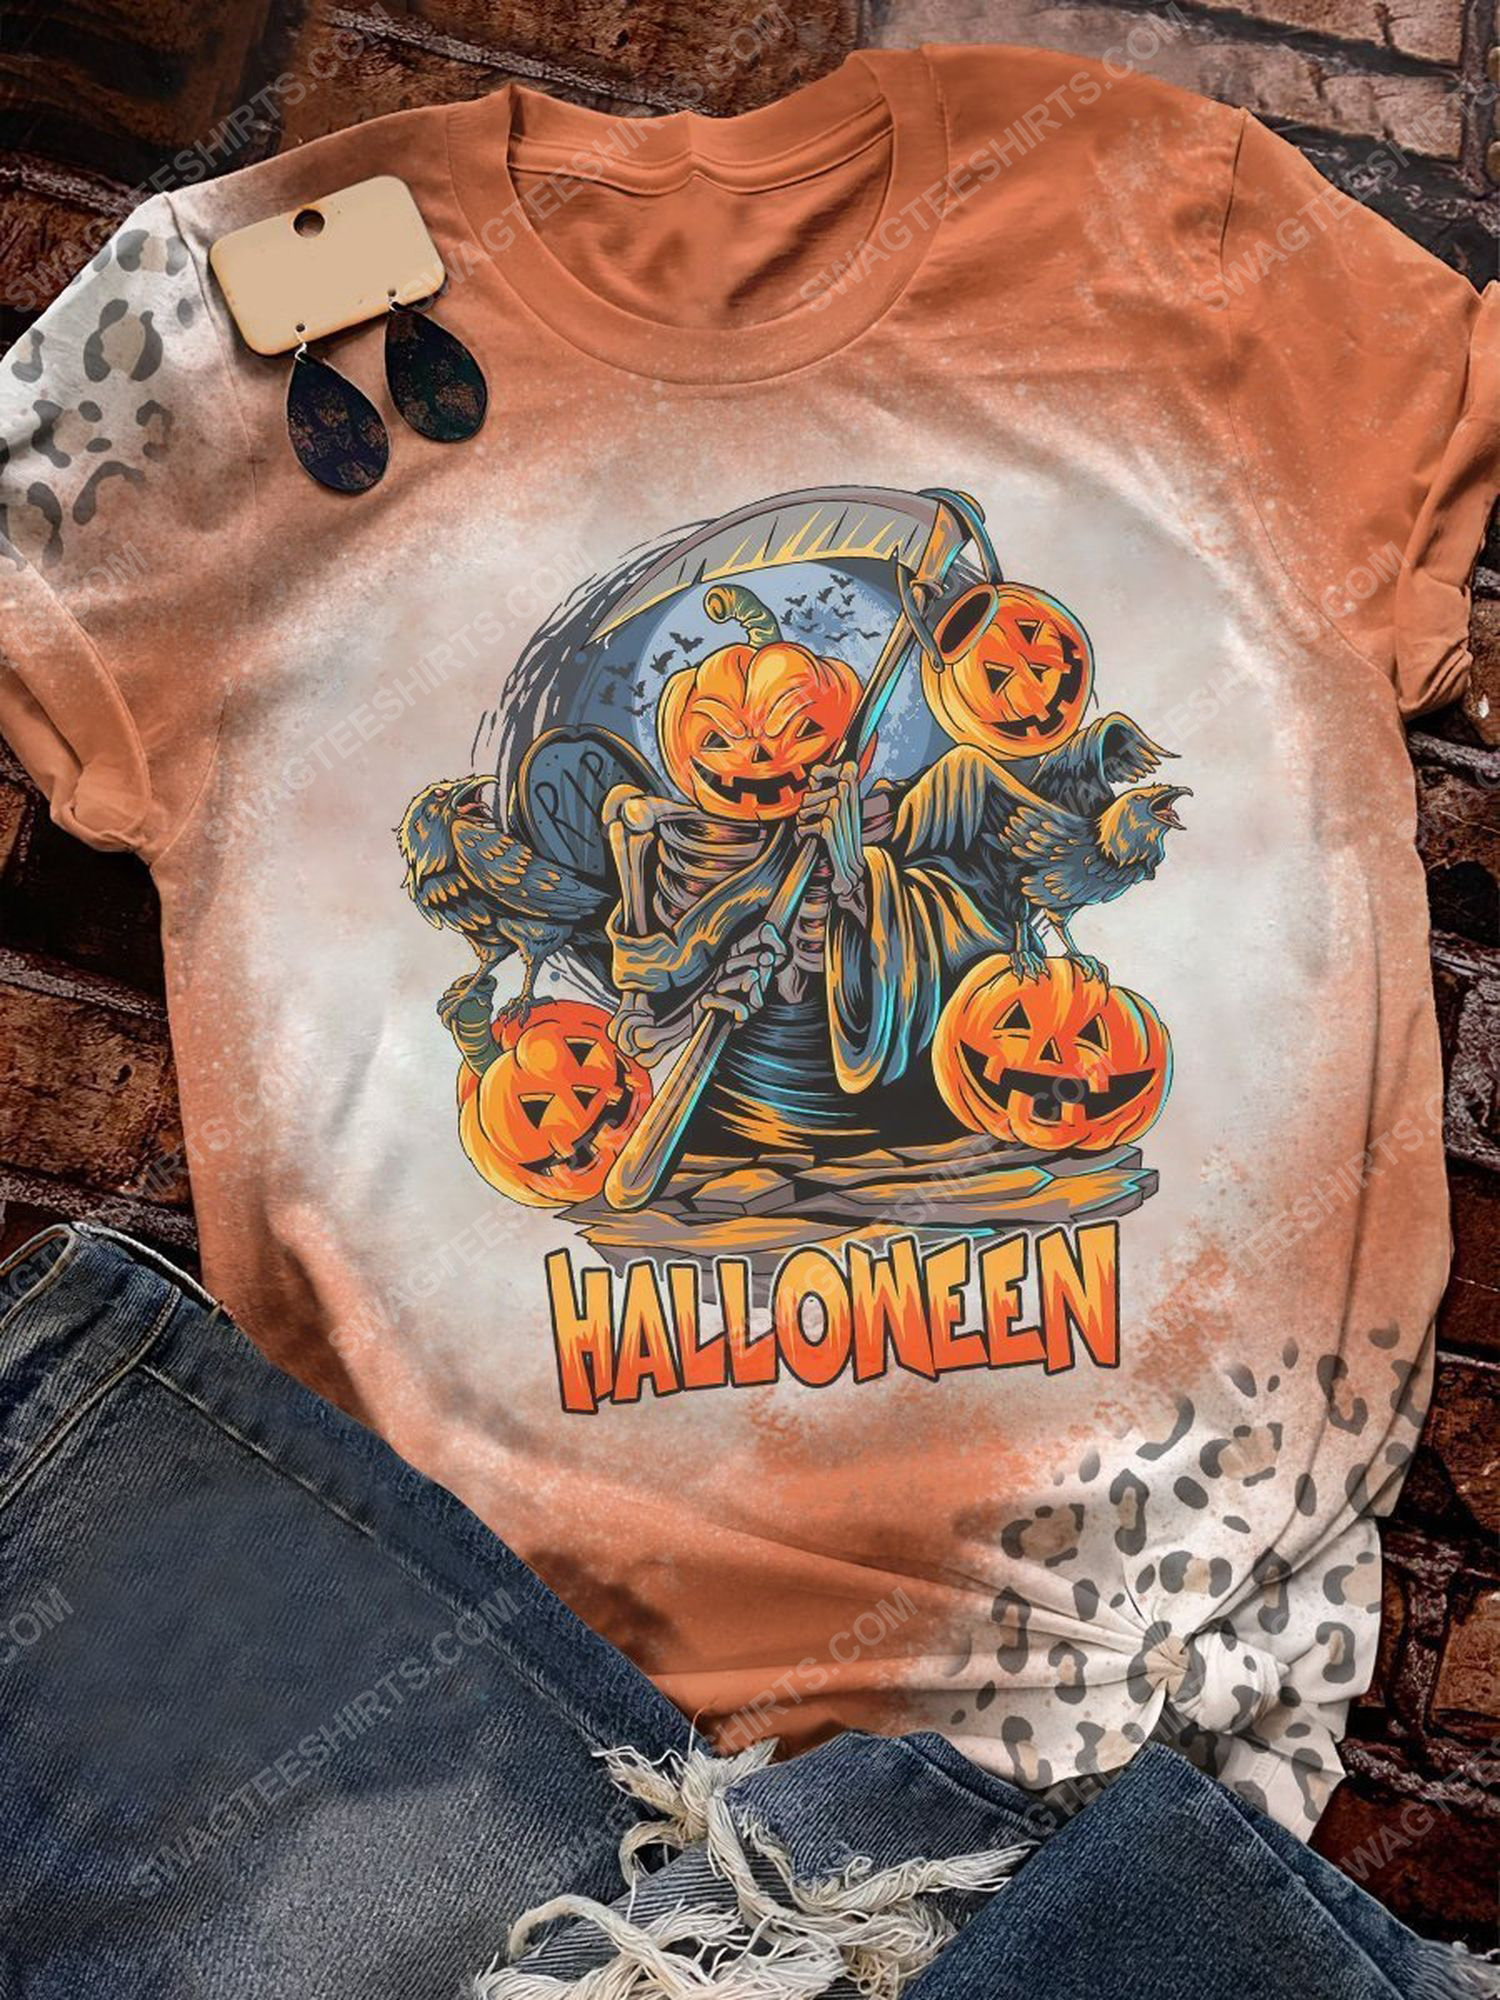 Halloween night and the death with pumpkin head shirt 1 - Copy (3)